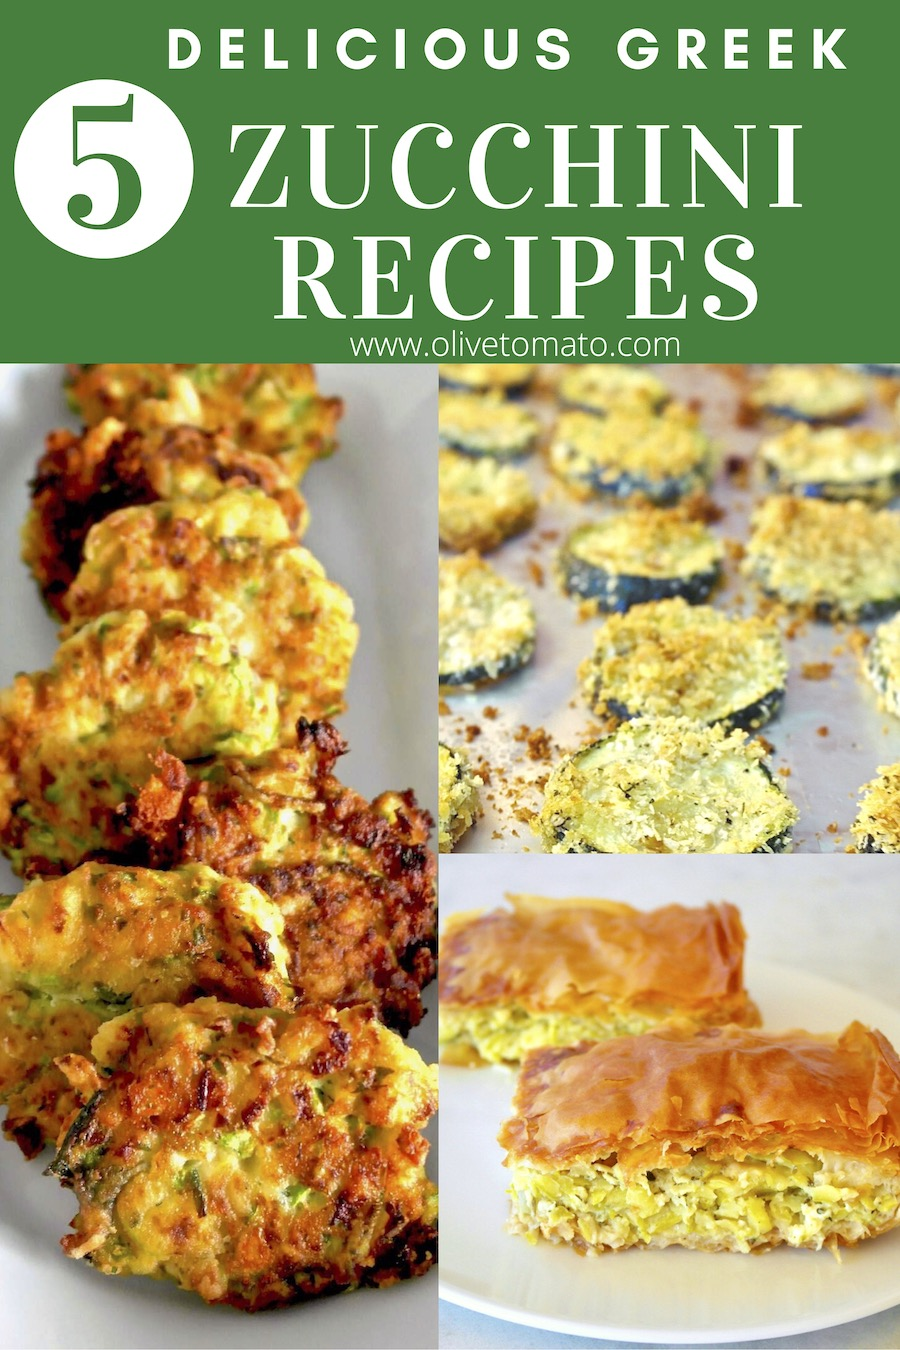 Must try delicious Greek Mediterranean Zucchini recipes. Scrumptious recipes that you will make over and over again. #diet #greek #recipes #easy #zucchini #mediterranean